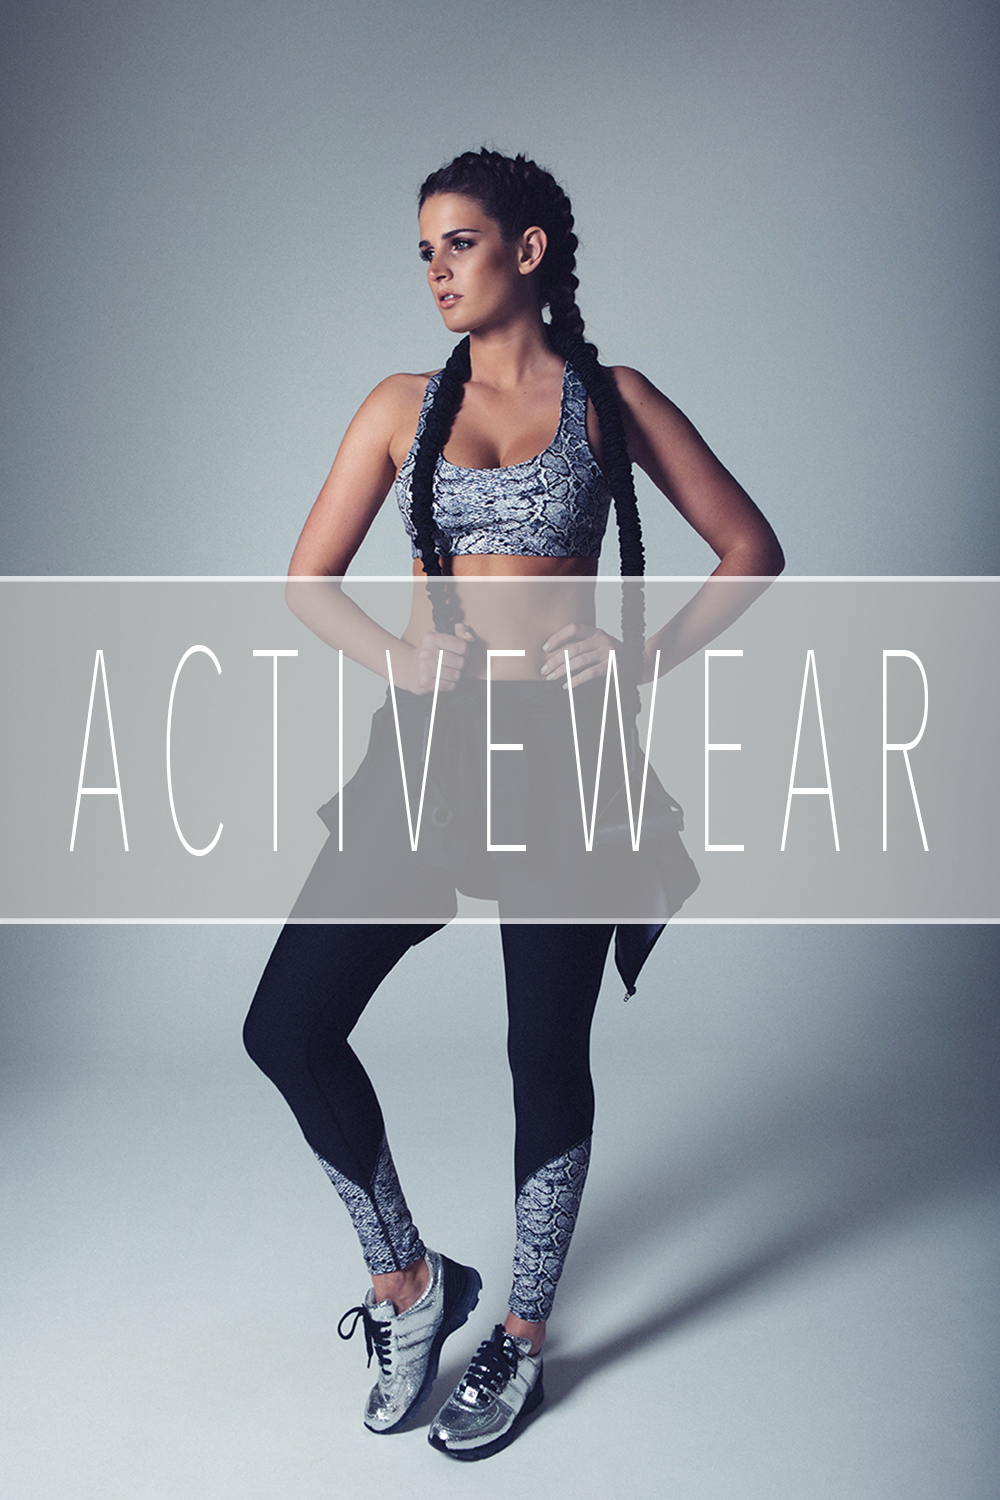 view-activewear